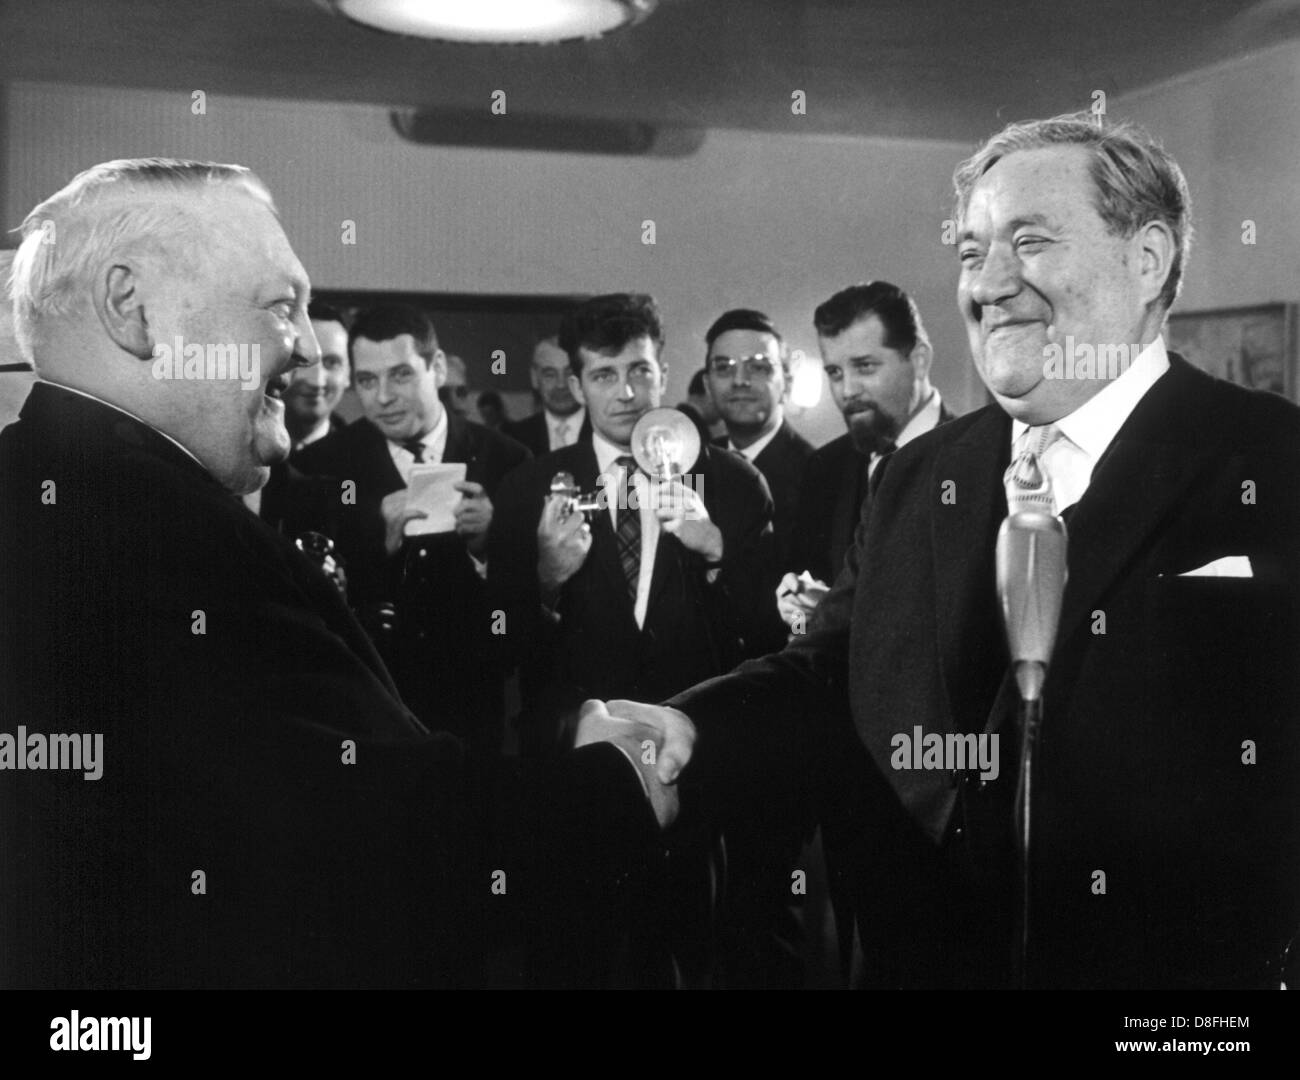 Vice president of the German Bundestag Carlo Schmid (r) congratulates federal minister of economy Ludwig Erhard - Stock Image